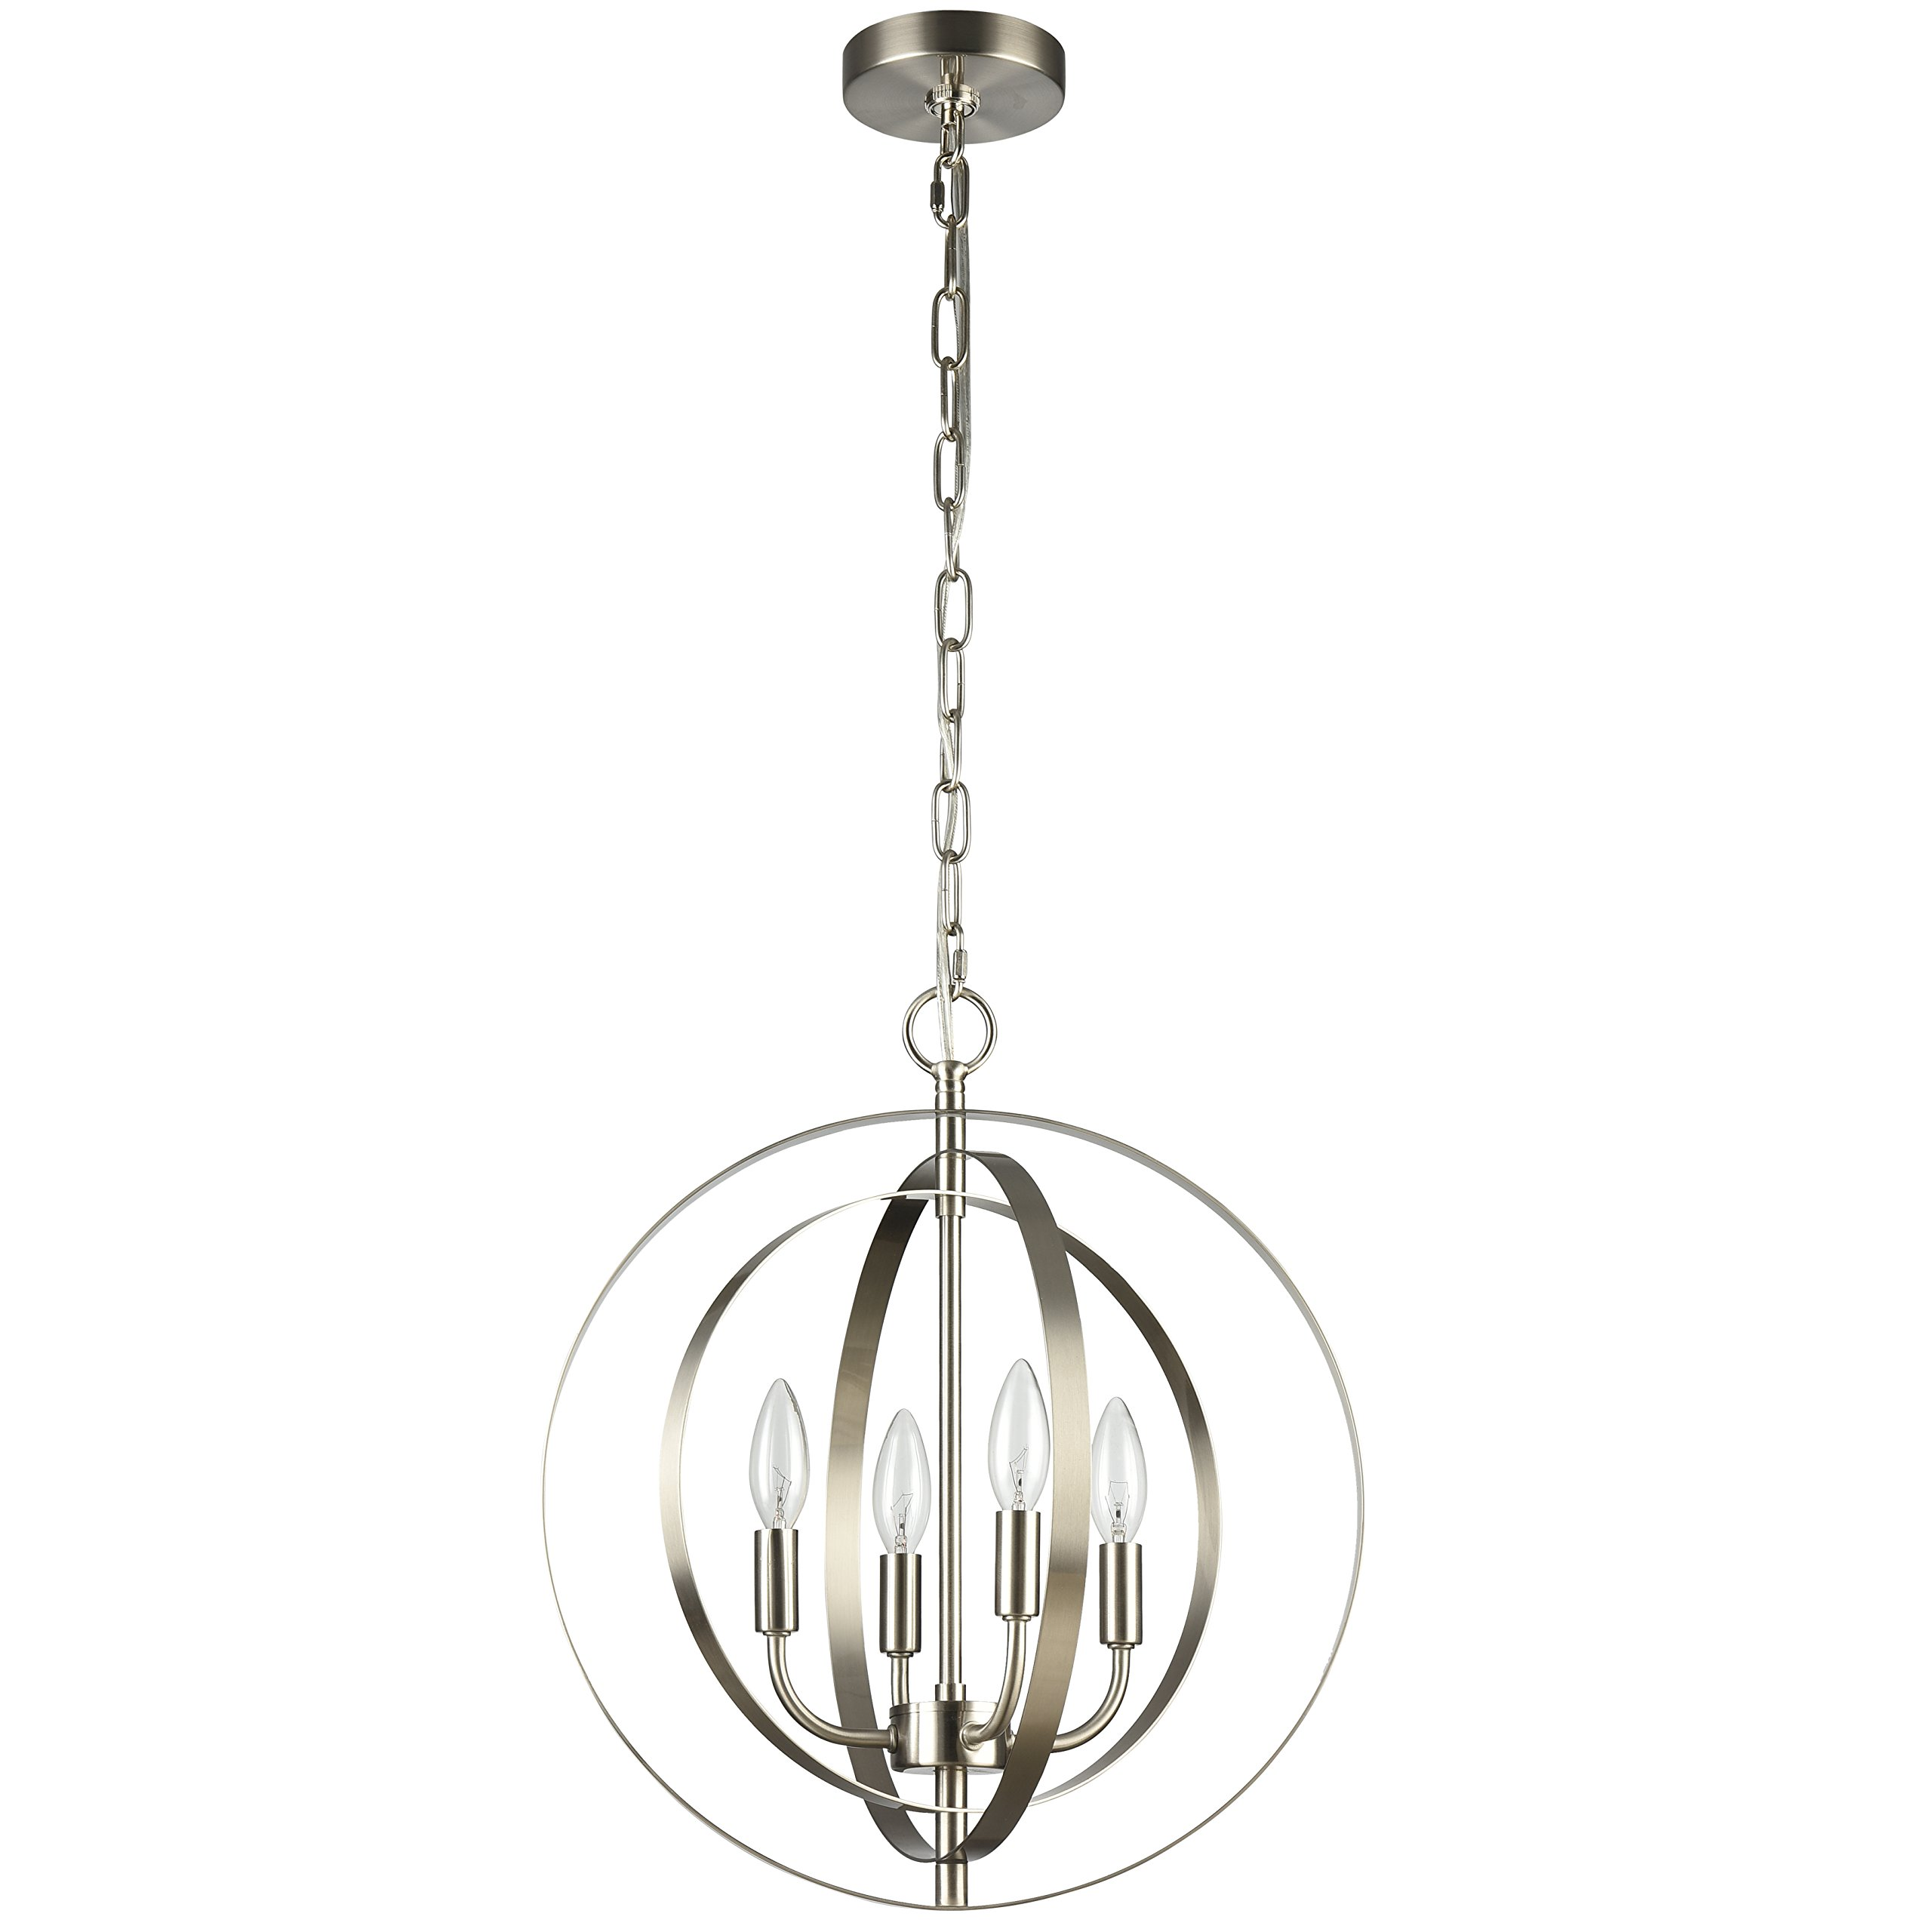 MICSIU Industrial Pendant Vintage Light,Globe Hanging Lamp Antique chandelier,Ceiling droplight Fixture For Kitchen Hallway Porch Dining Room Bedroom ,Brushed Nickel,